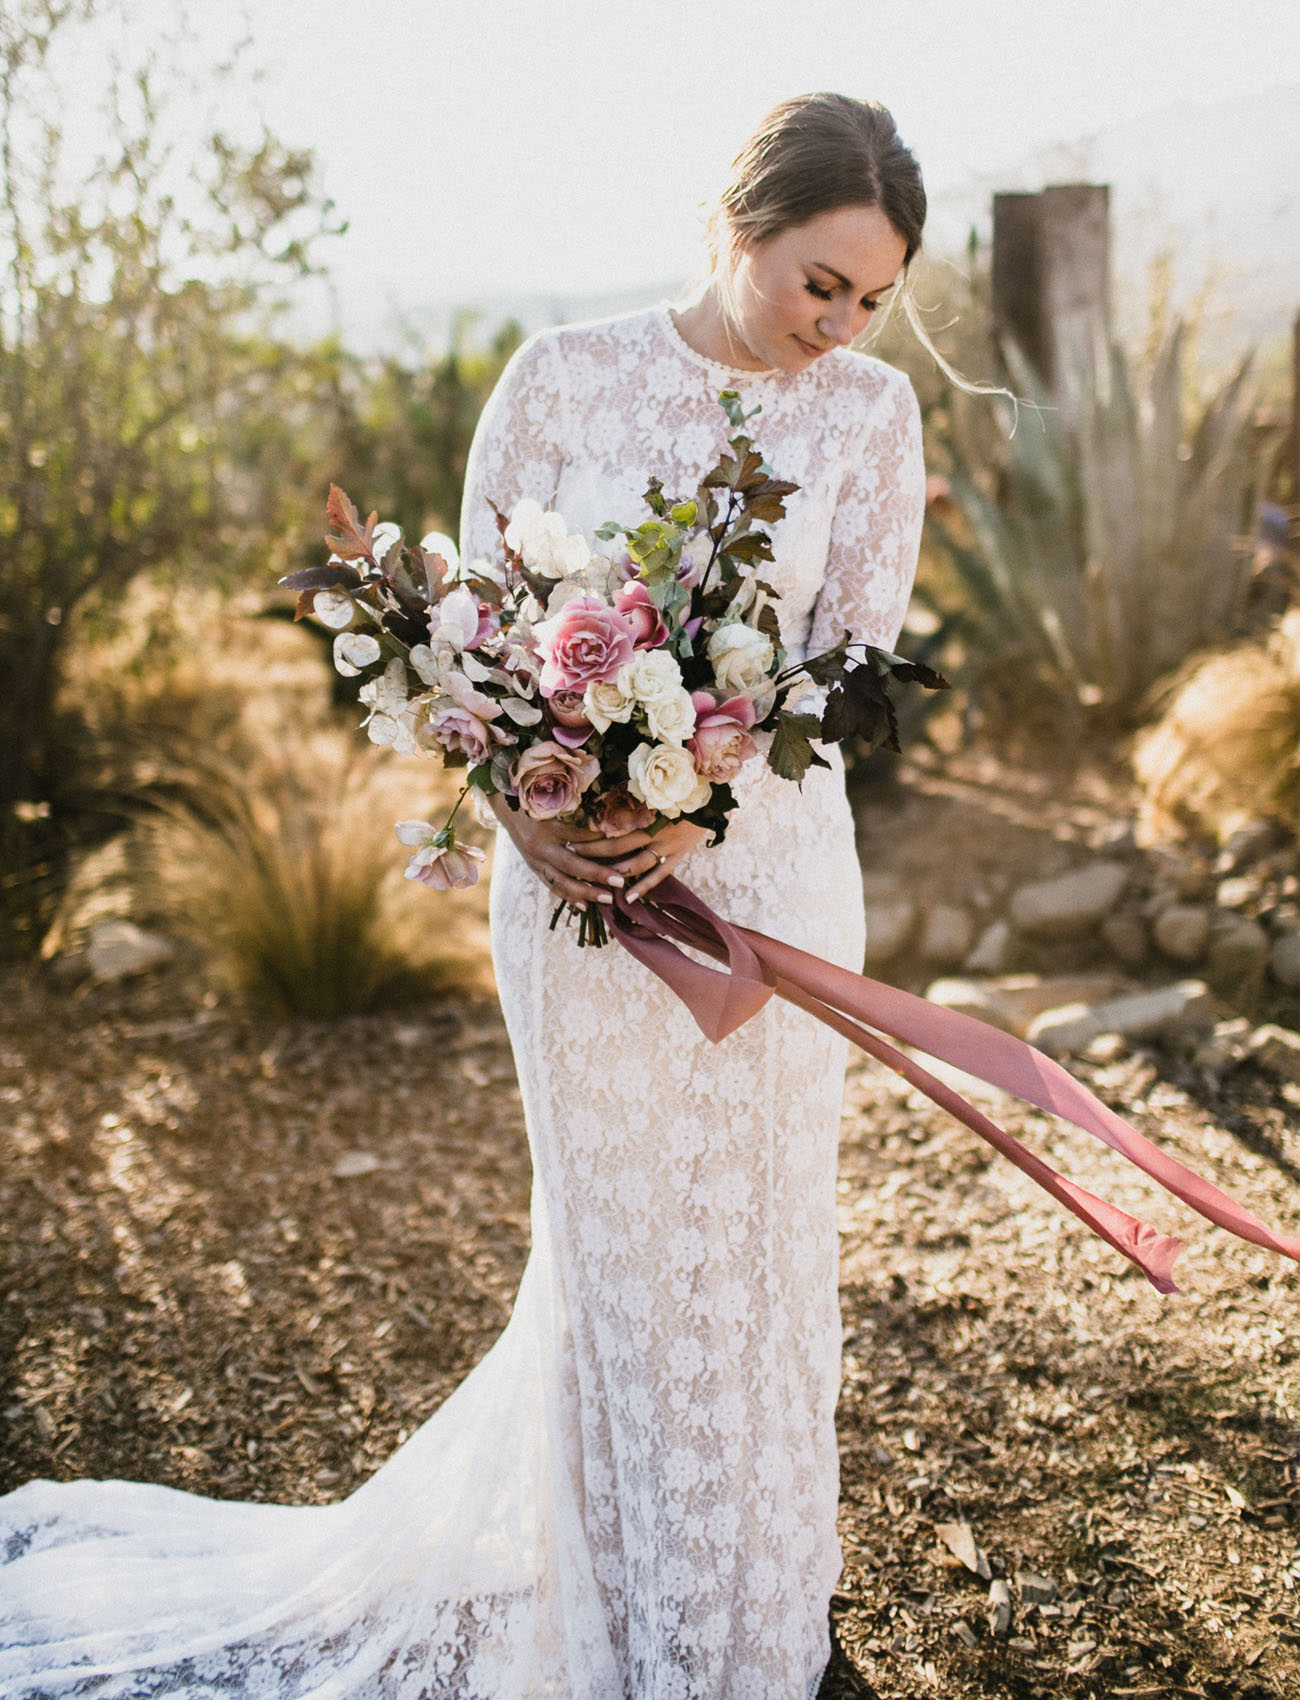 The bride was wearing a lace sheath wedding dress with long sleeves, a train and an illusion neckline